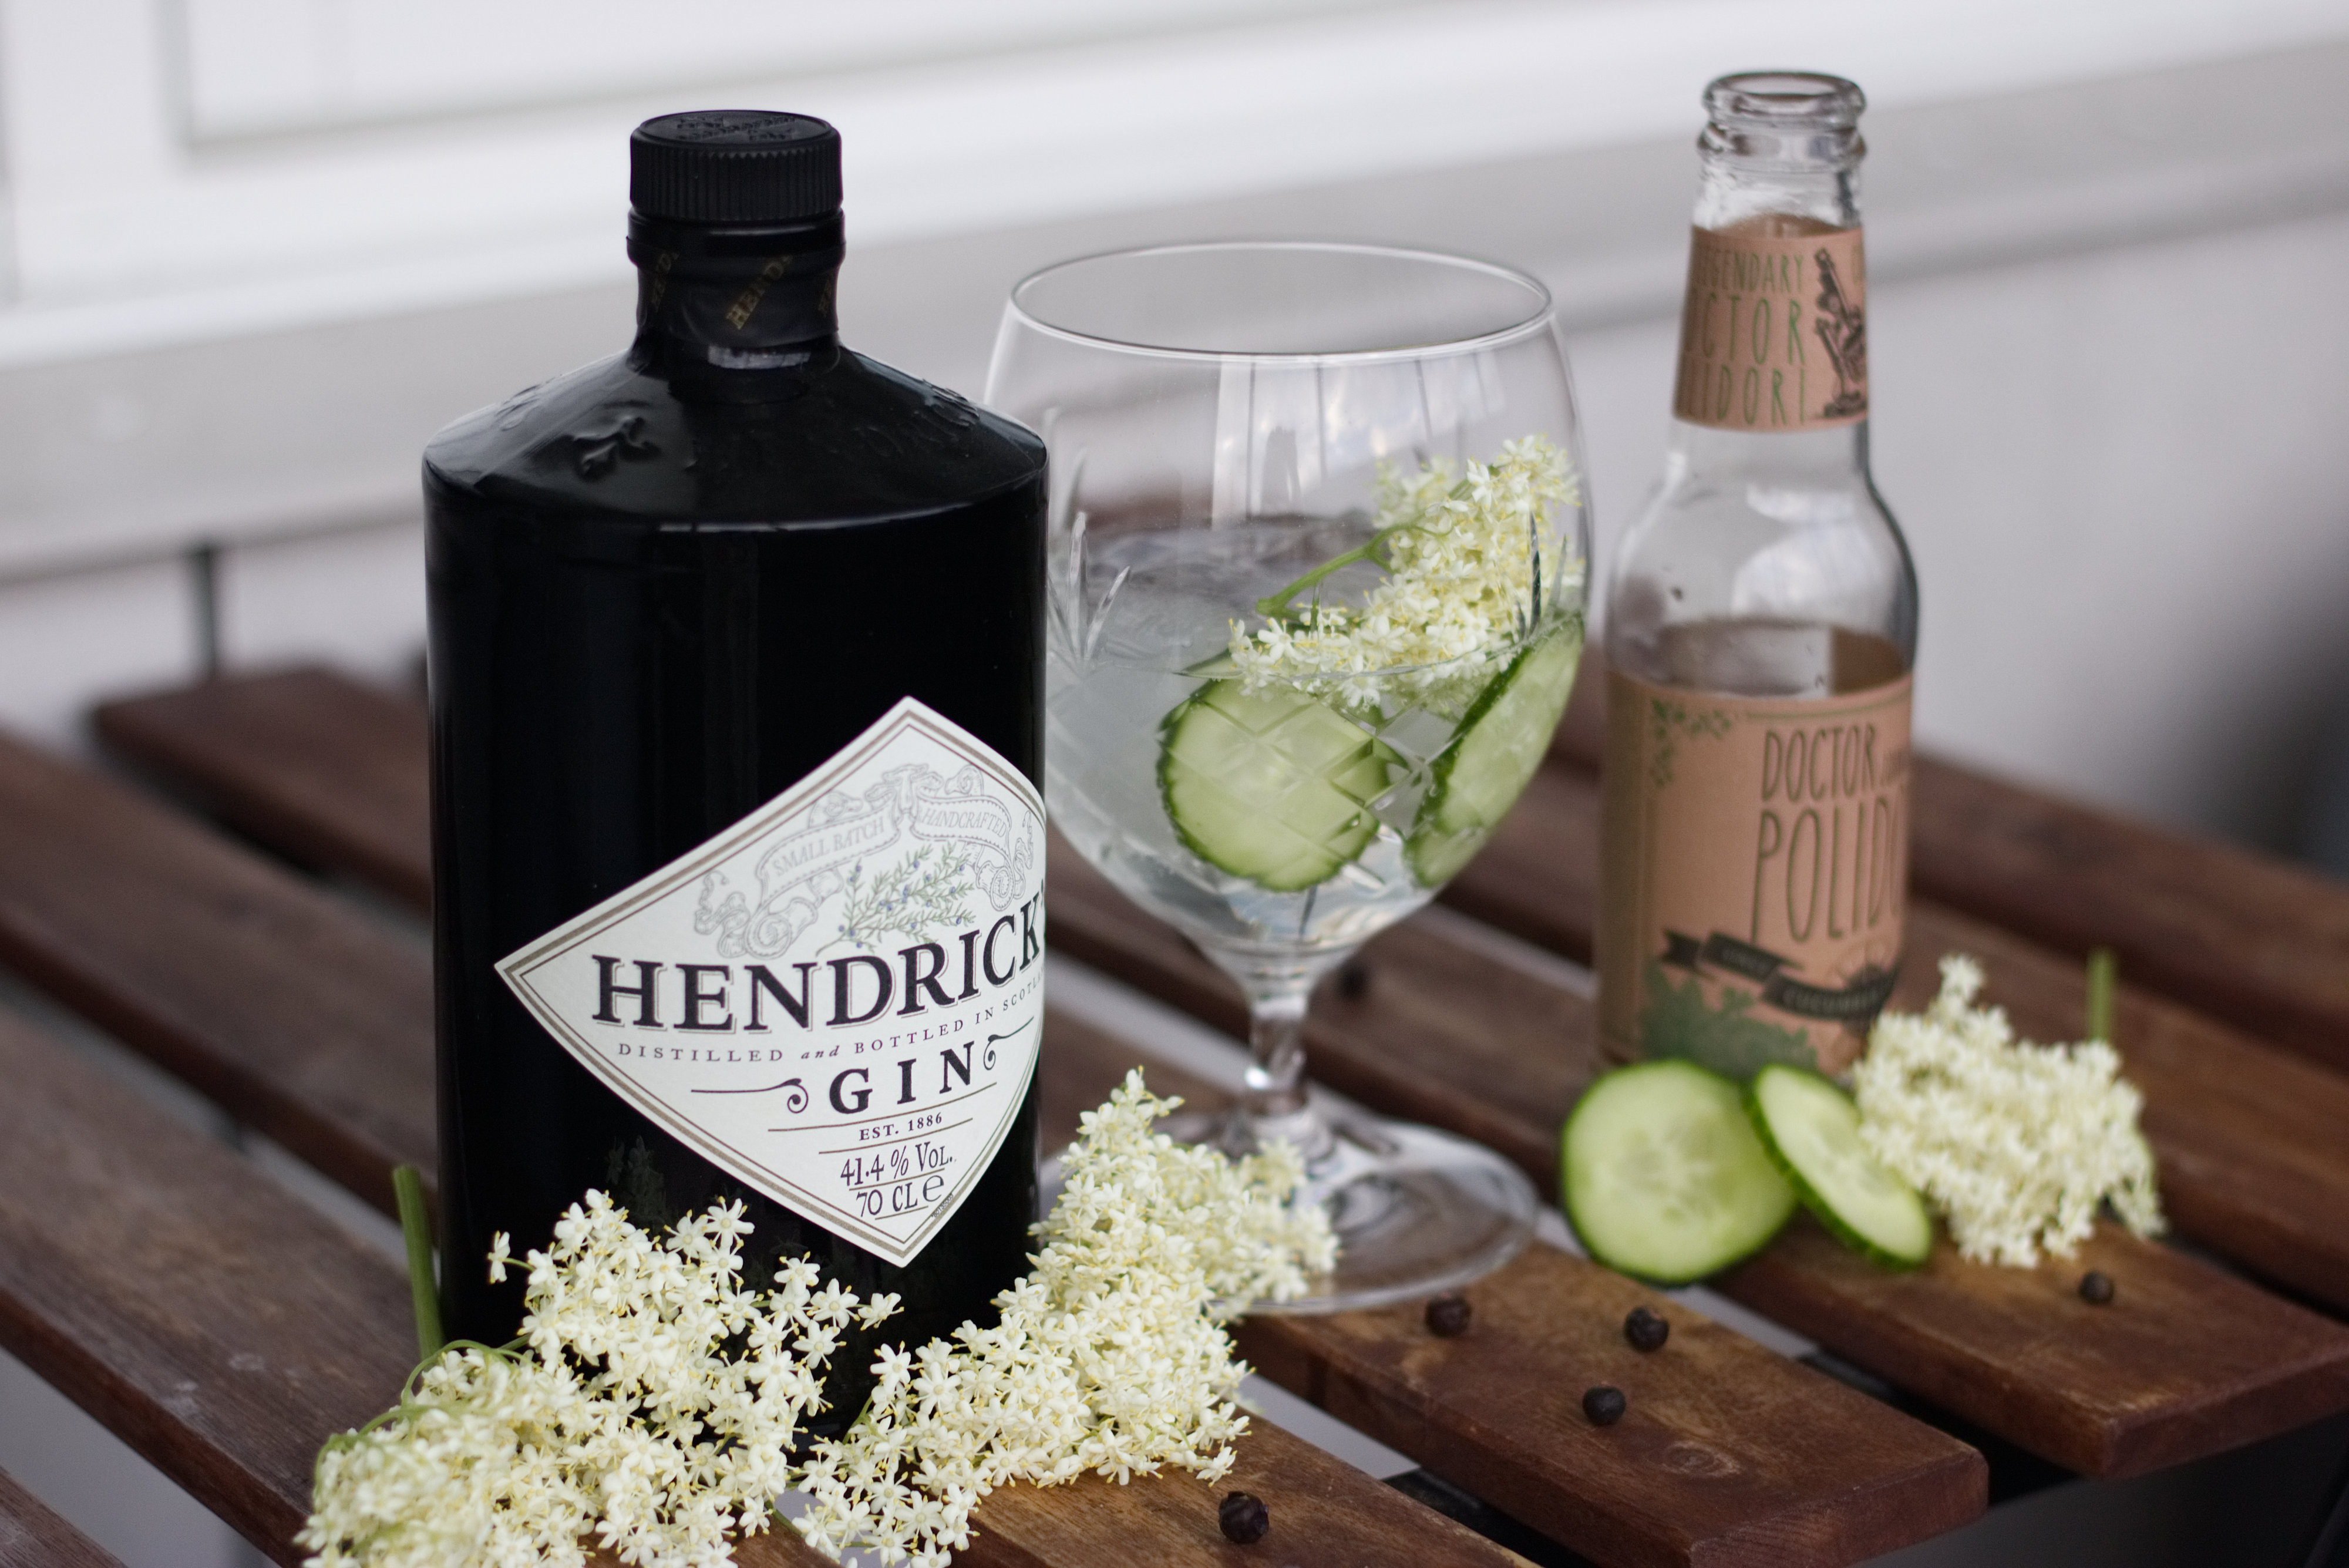 Hendricks Gin review